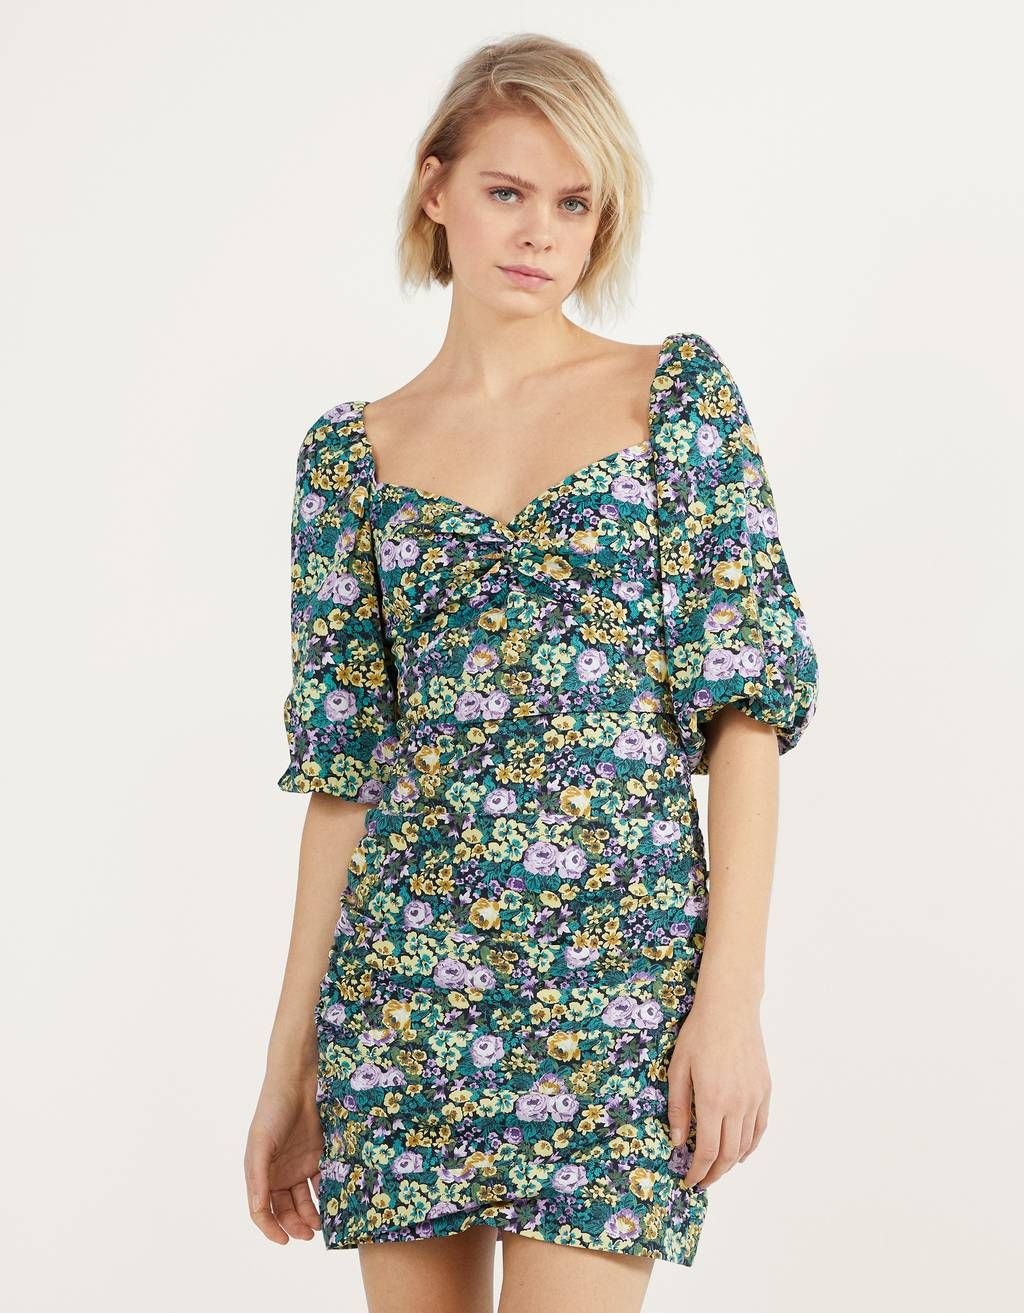 Floral dress with a sweetheart neckline